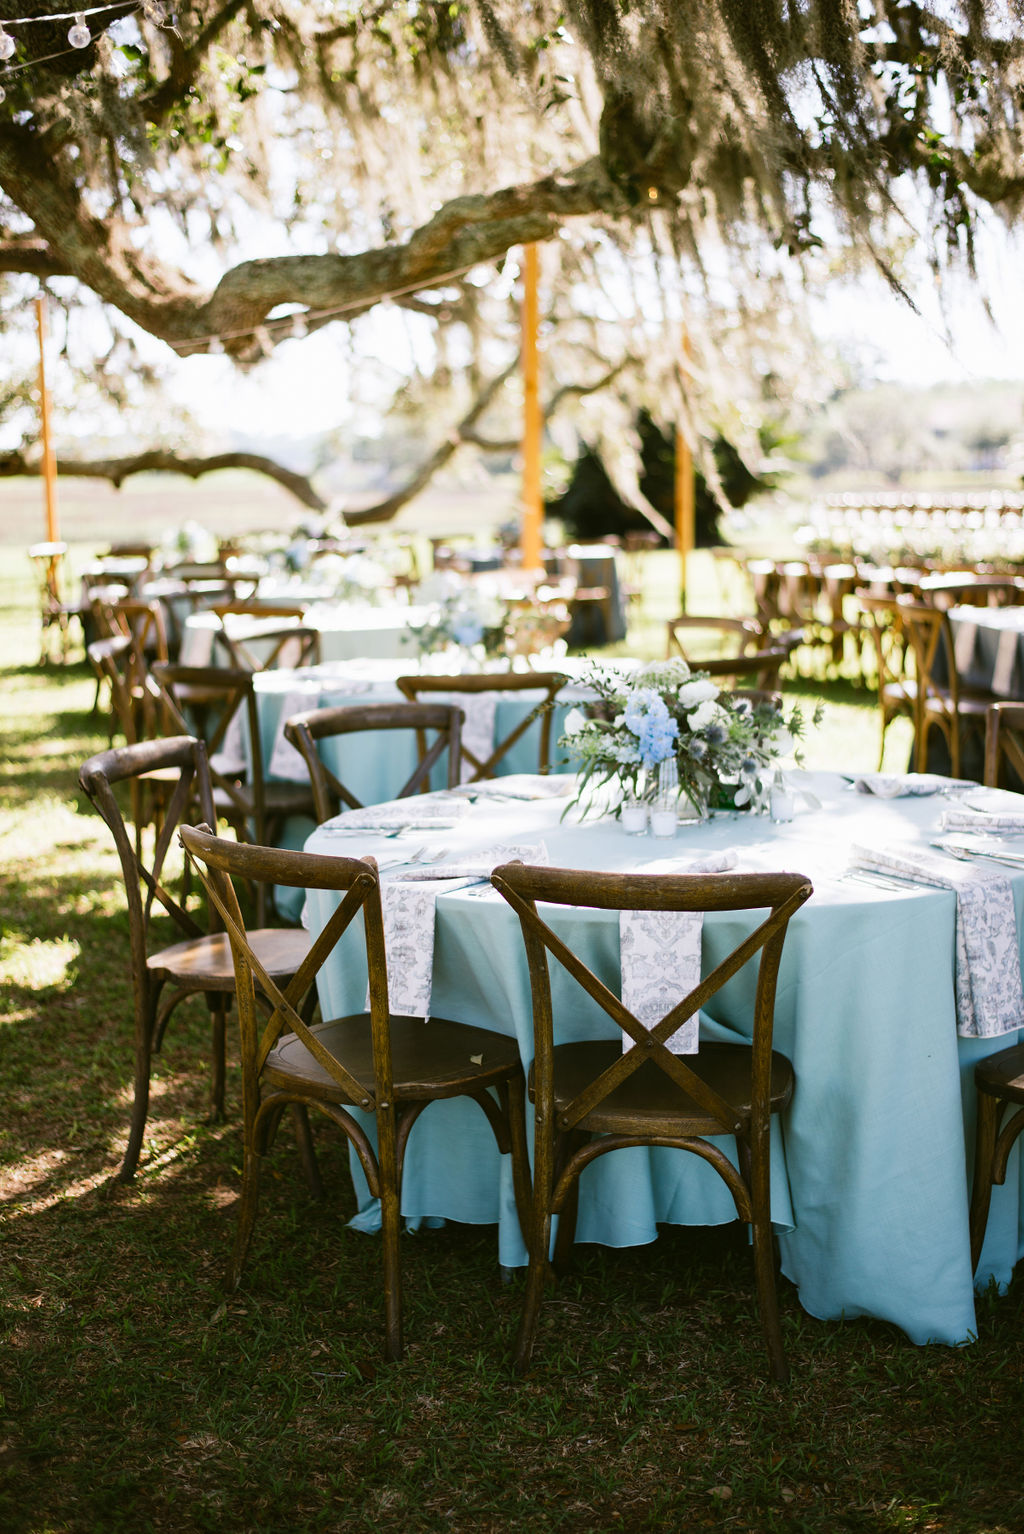 Coastal Edisto Island Wedding at Cypress Trees Plantation - Charleston Destination Luxury Wedding Planner - Scarlet Plan & Design (12).jpg